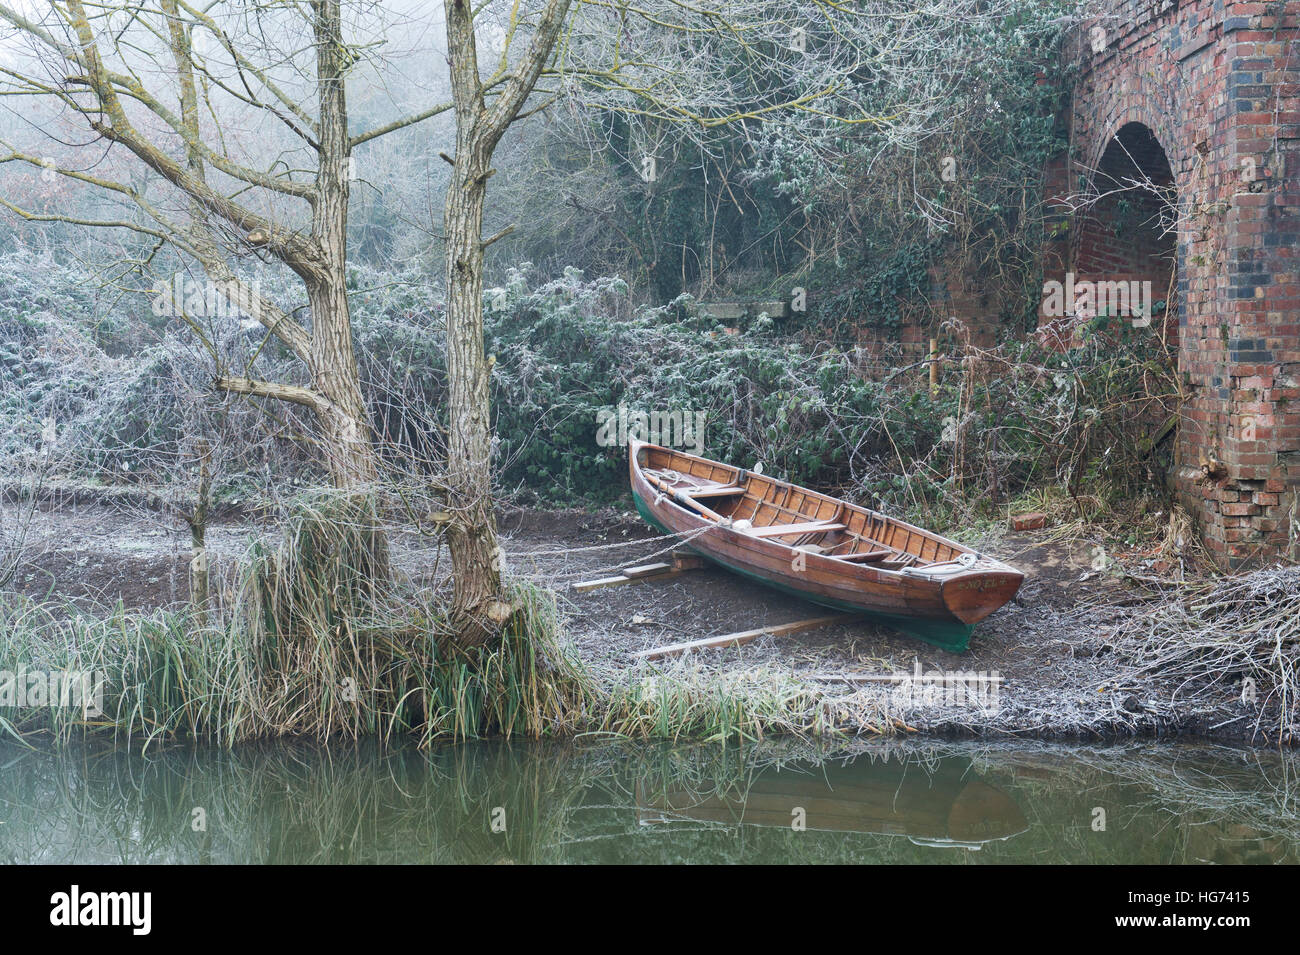 Wooden rowing boat by the Oxford canal on a frosty foggy December morning.  Oxfordshire, England - Stock Image